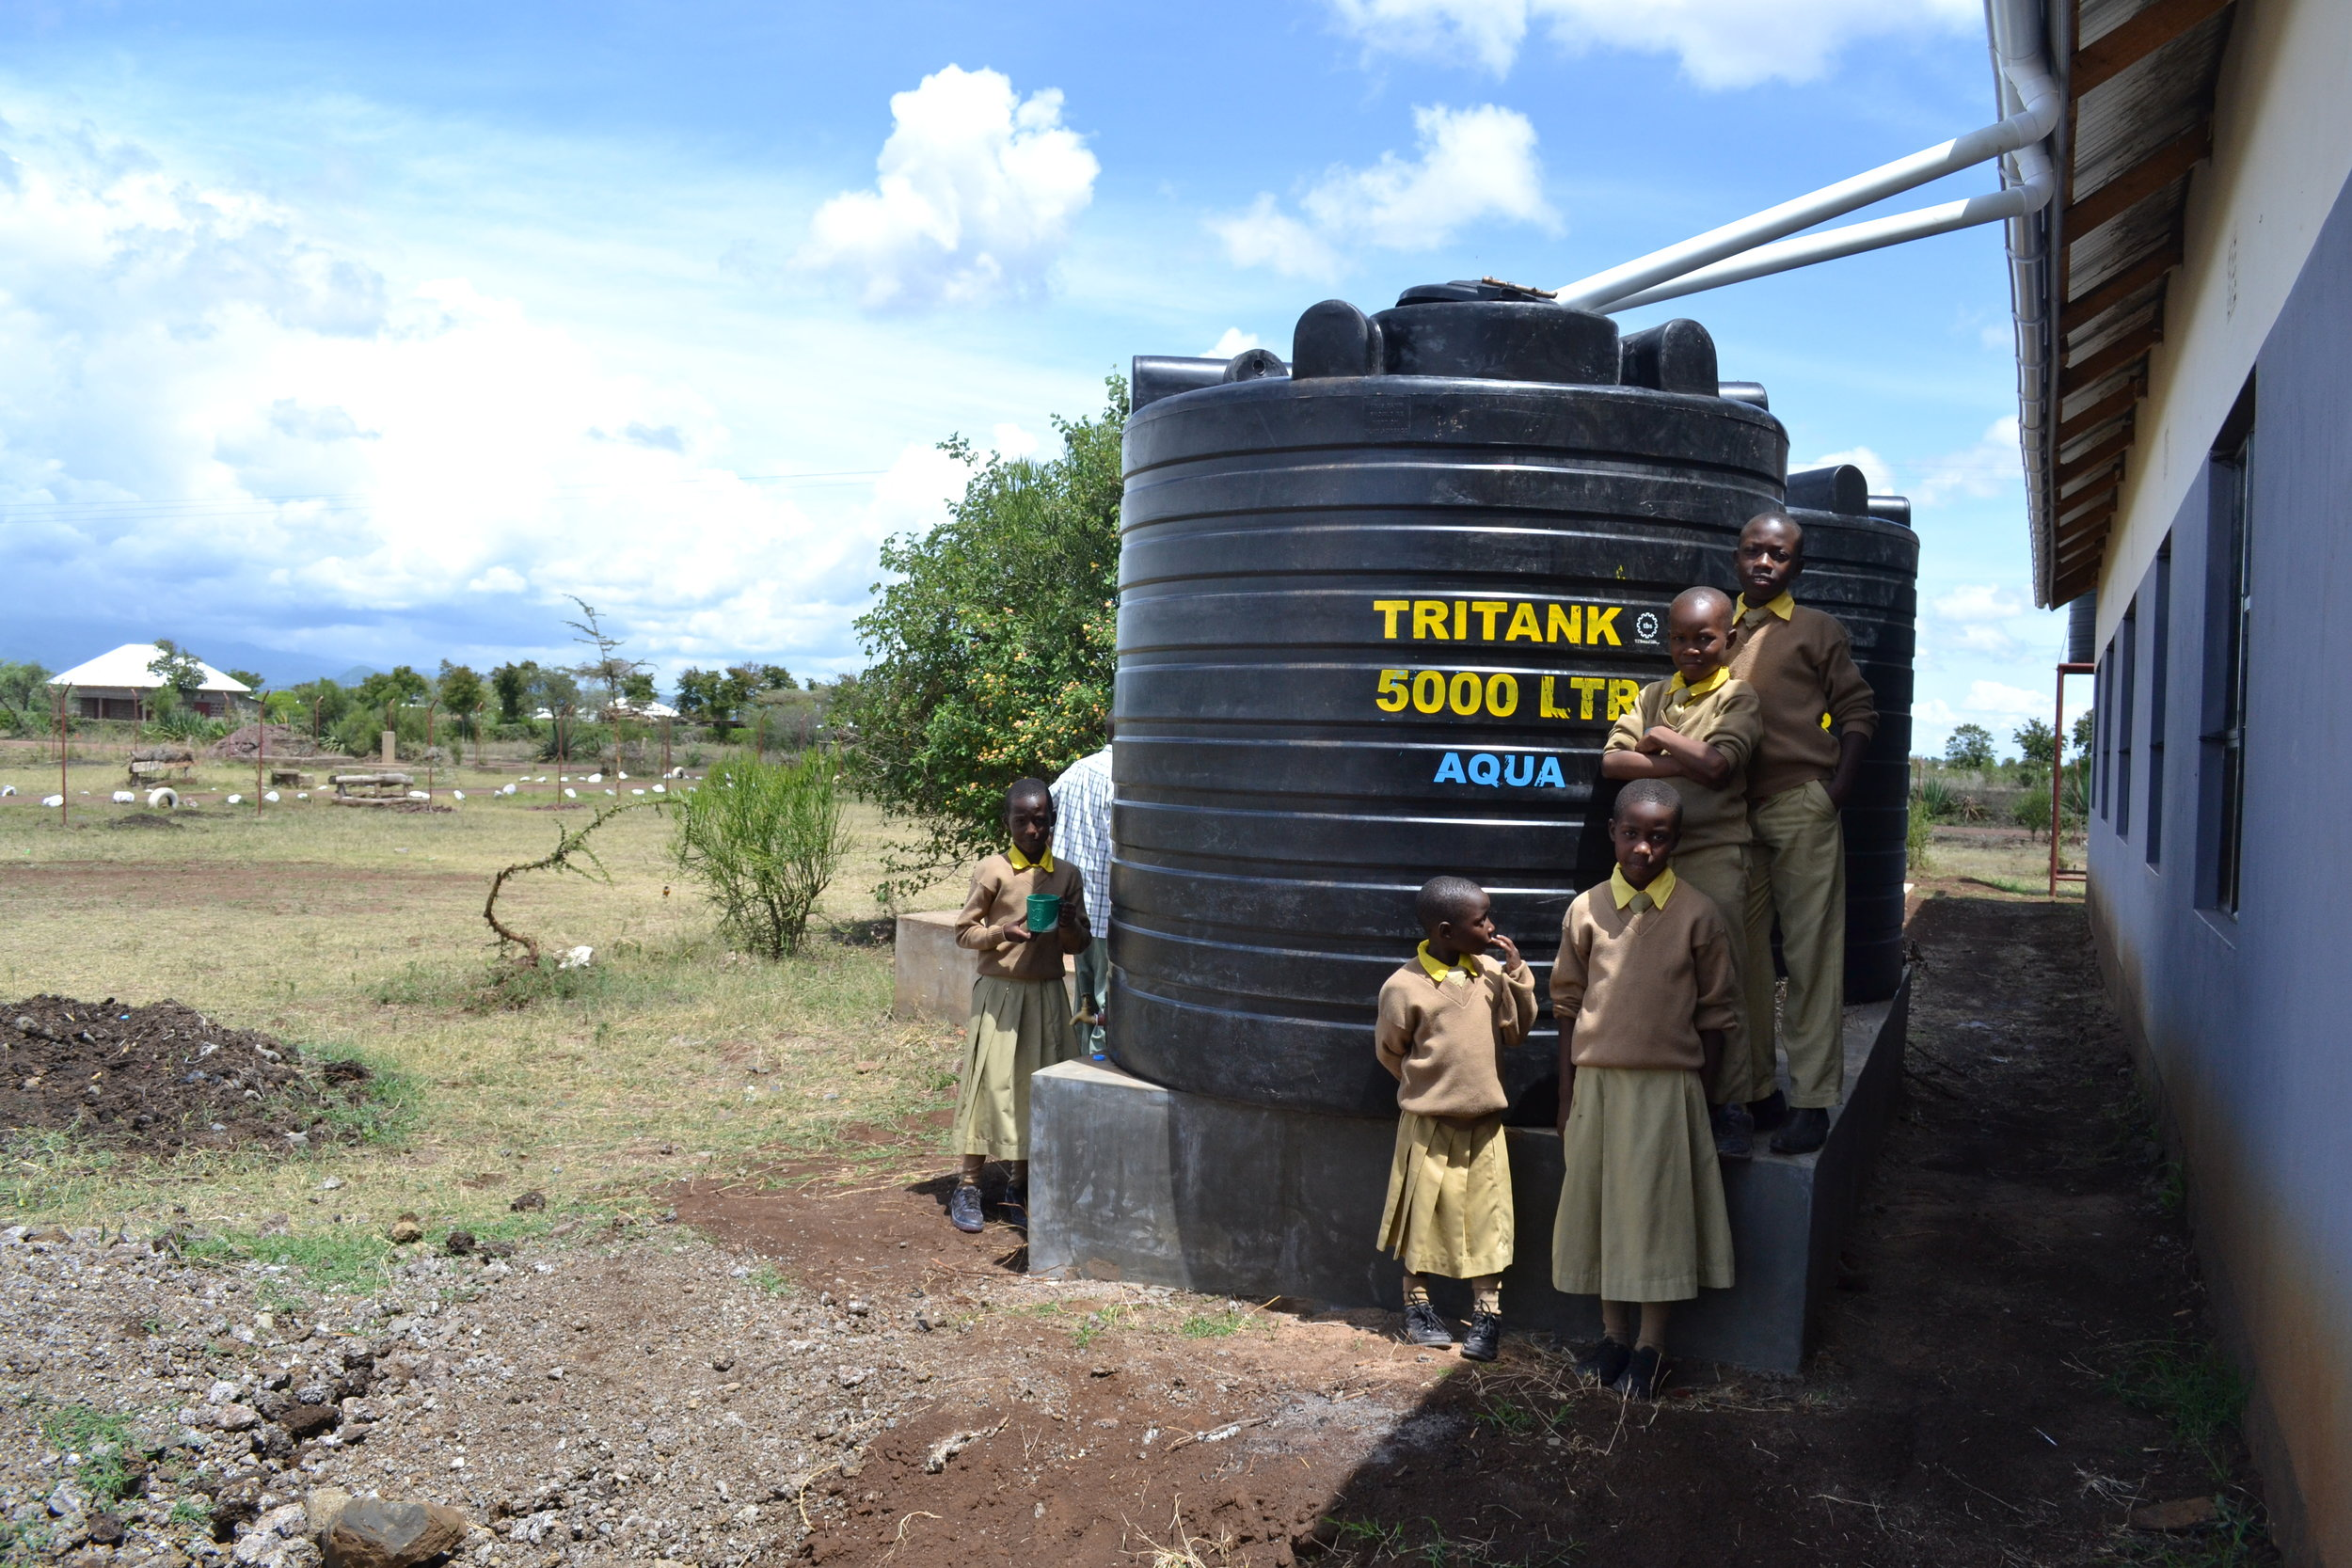 £250 CAN BUY A 5,000L RAIN WATER TANK - to collect safe drinking water for children